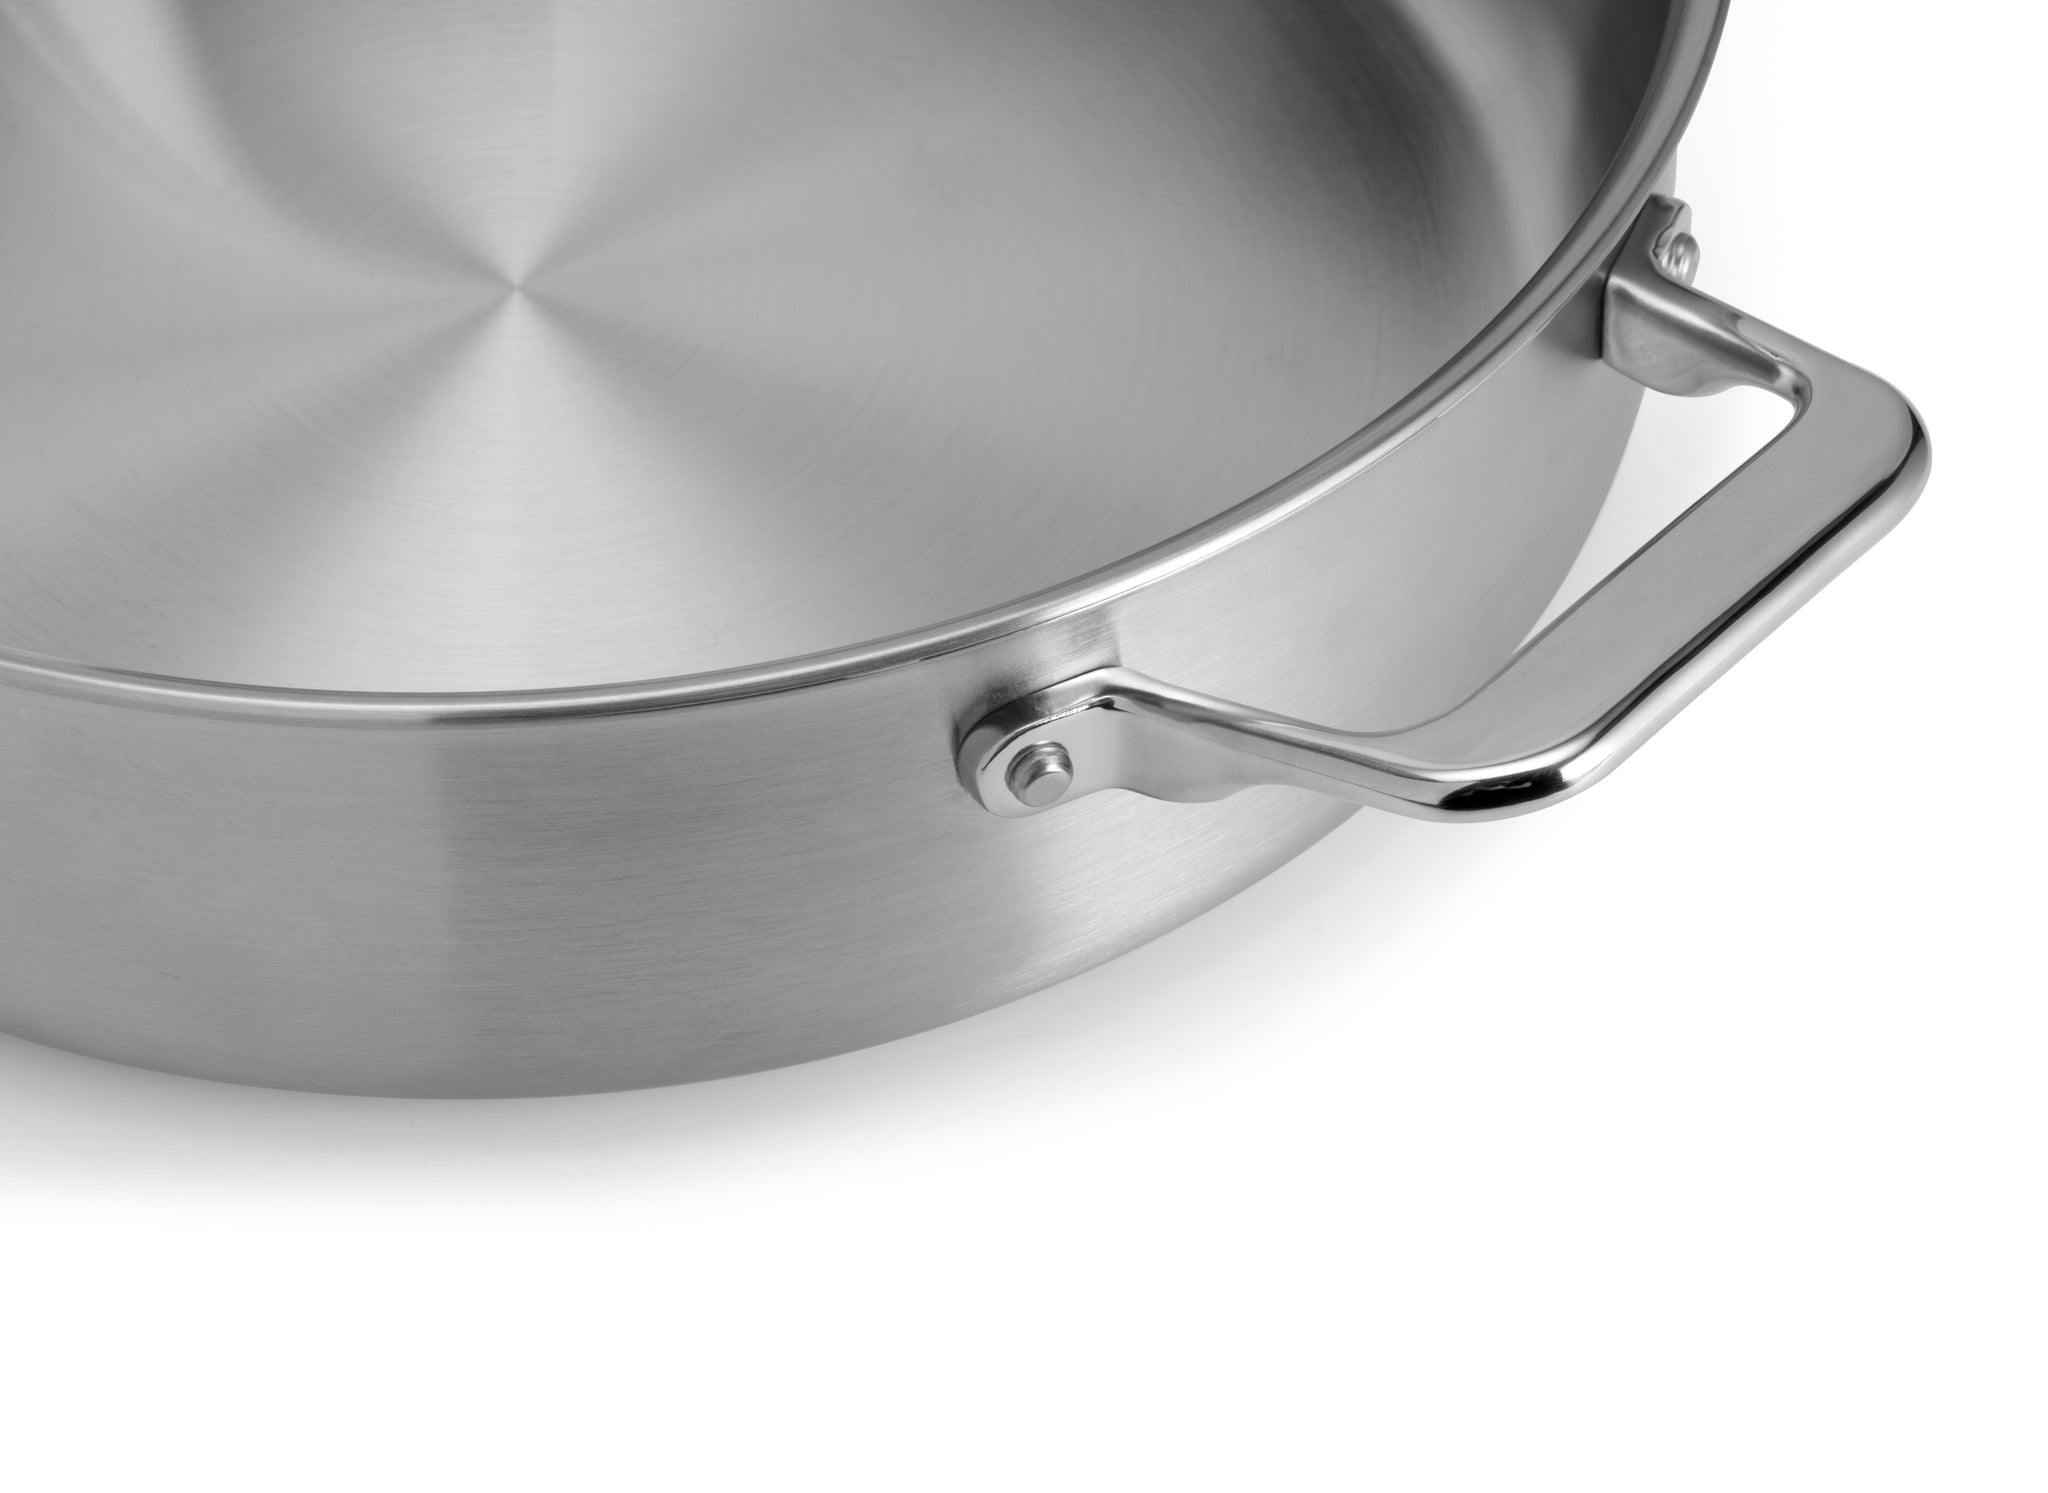 The handles of the Misen 6 QT Rondeau provide ample room for a comfortable grip.